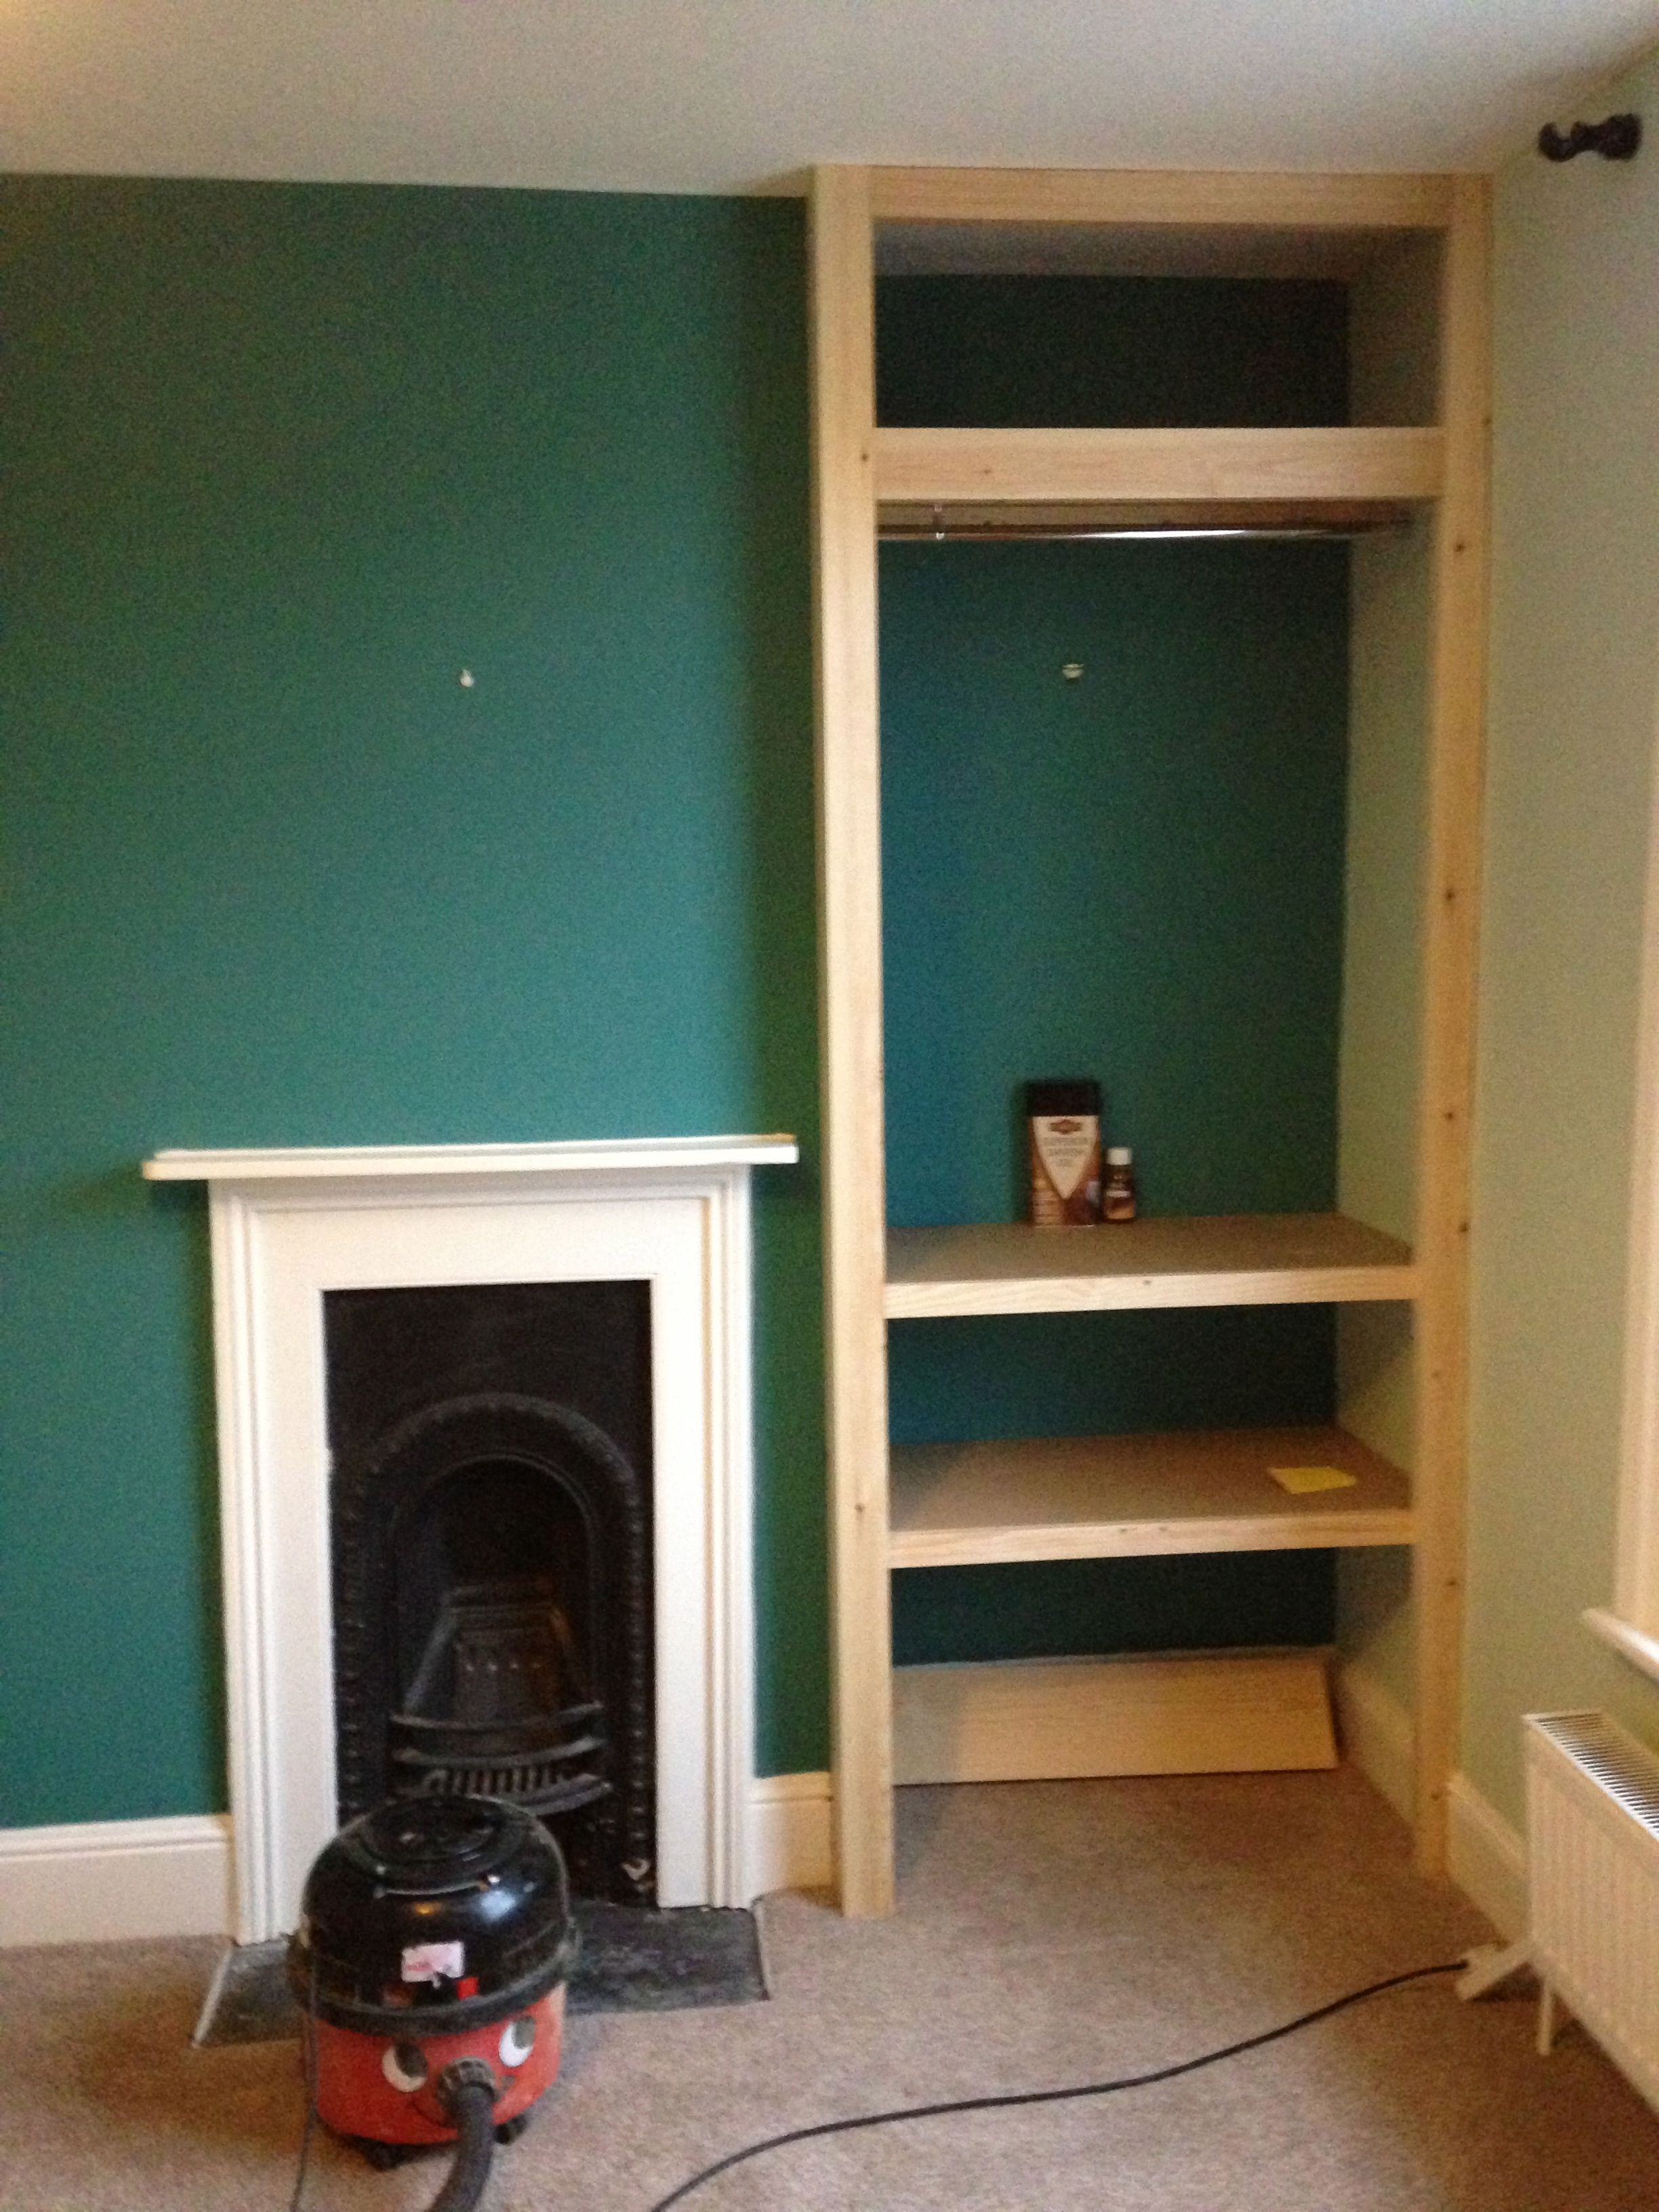 Fitted shelving, cupboards and flooring (With images ...